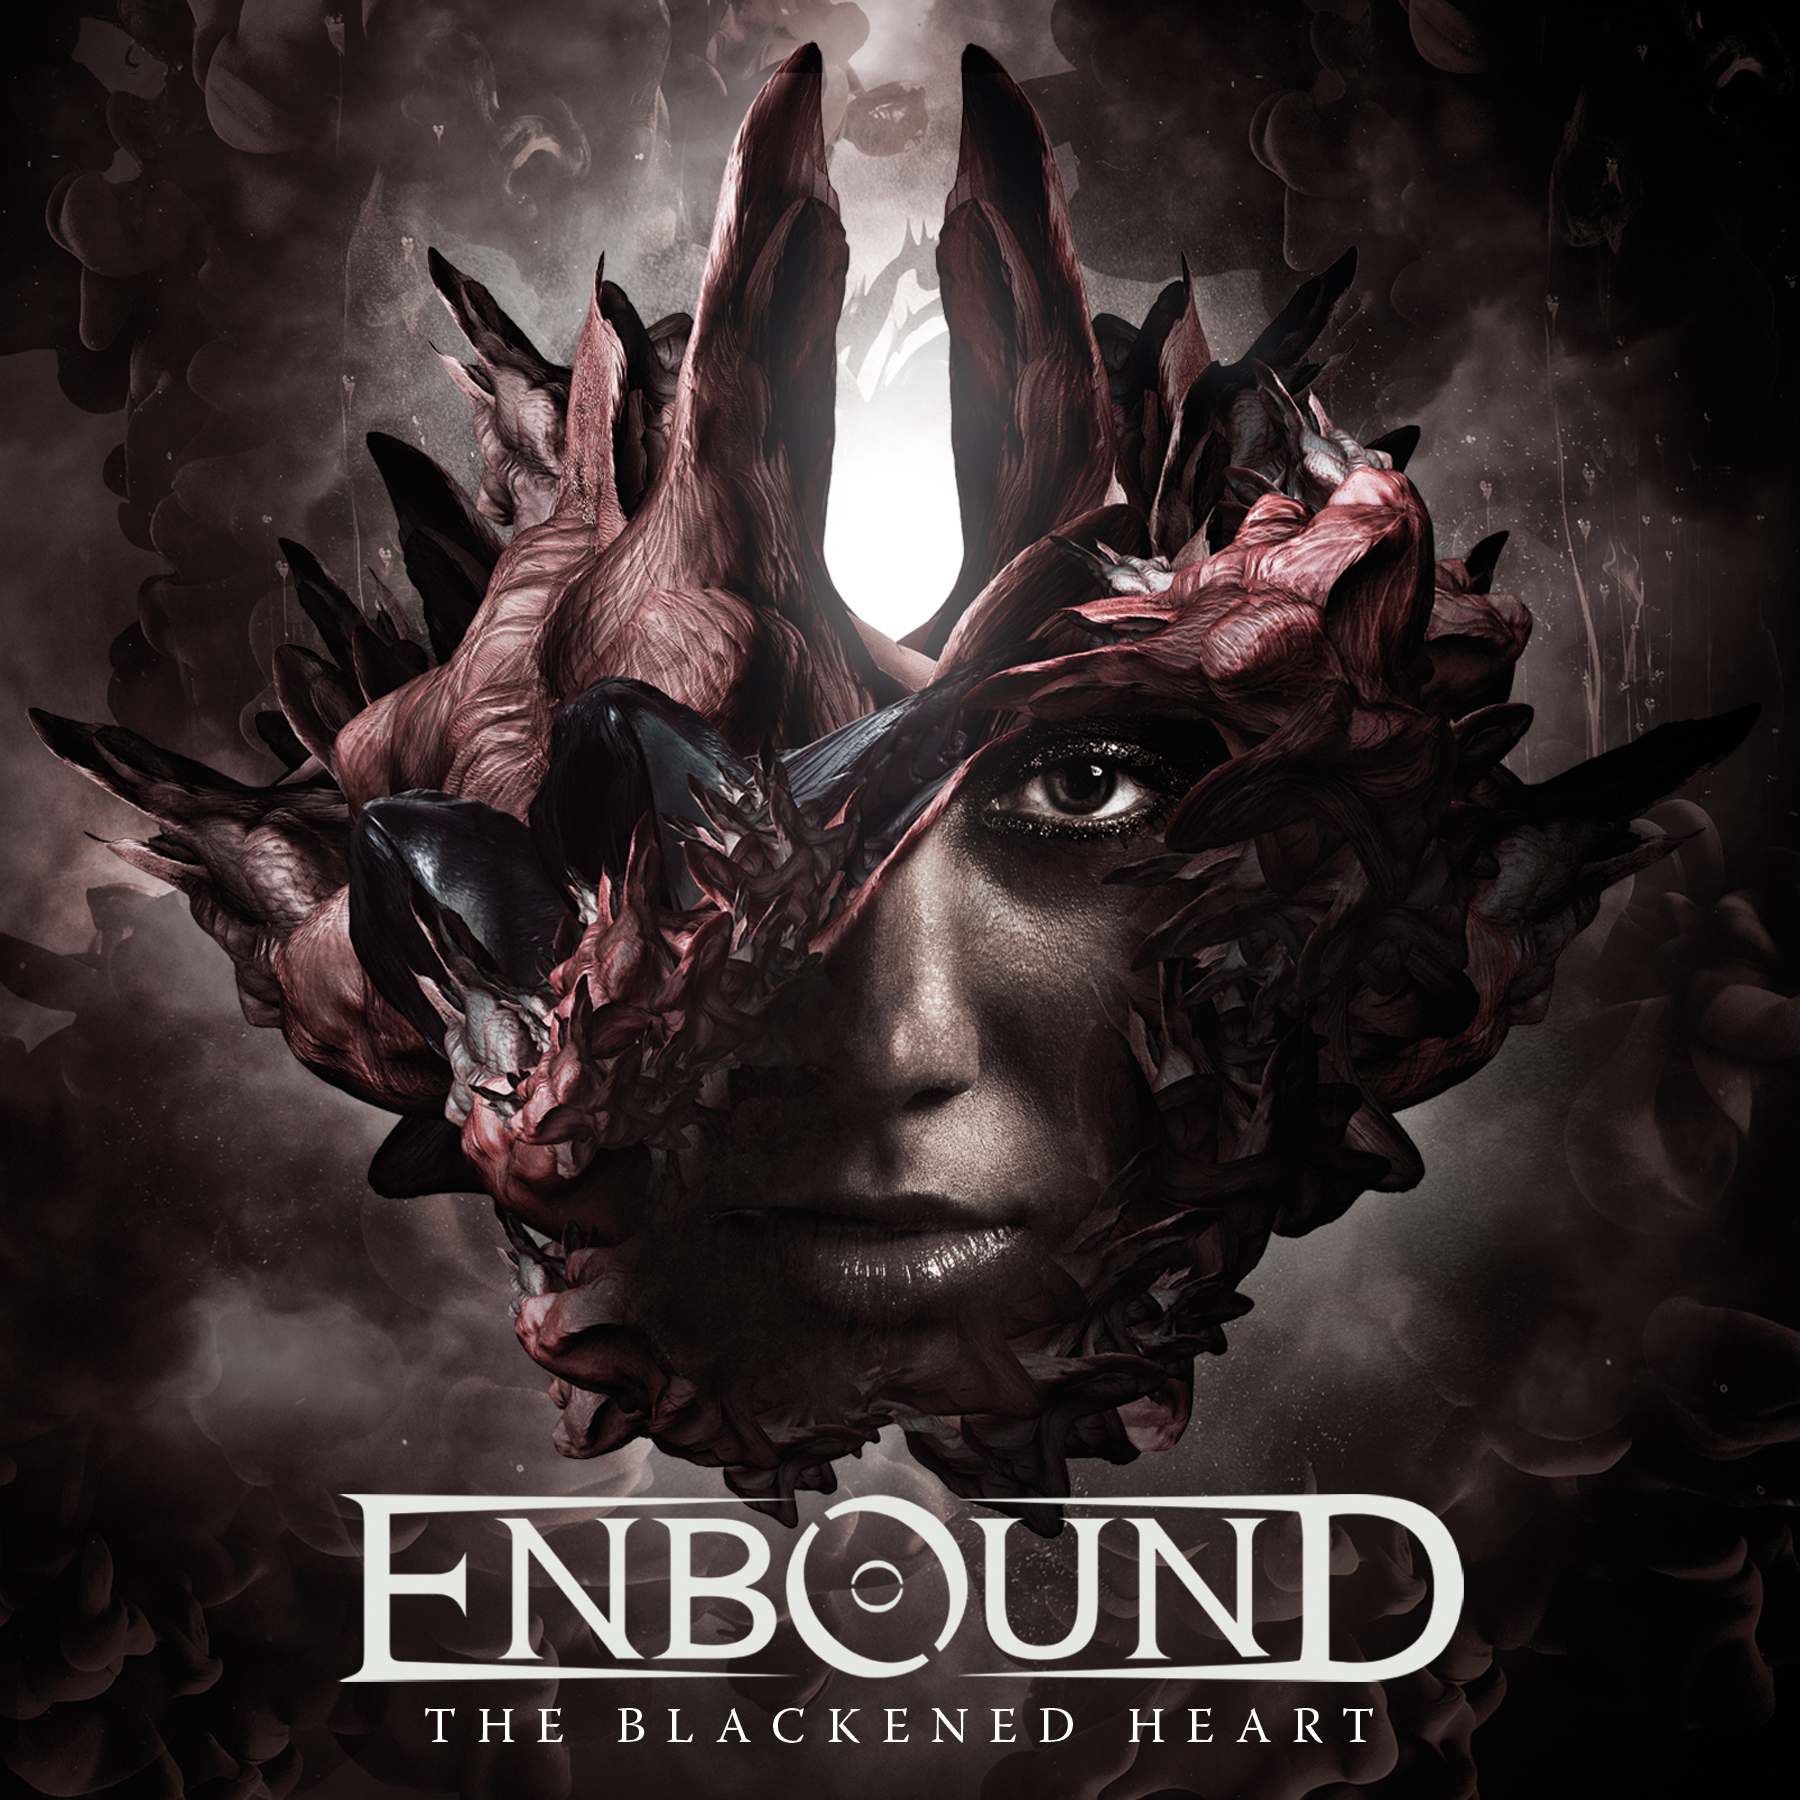 Enbound  The Blackened Heart Review  Angry Metal Guy